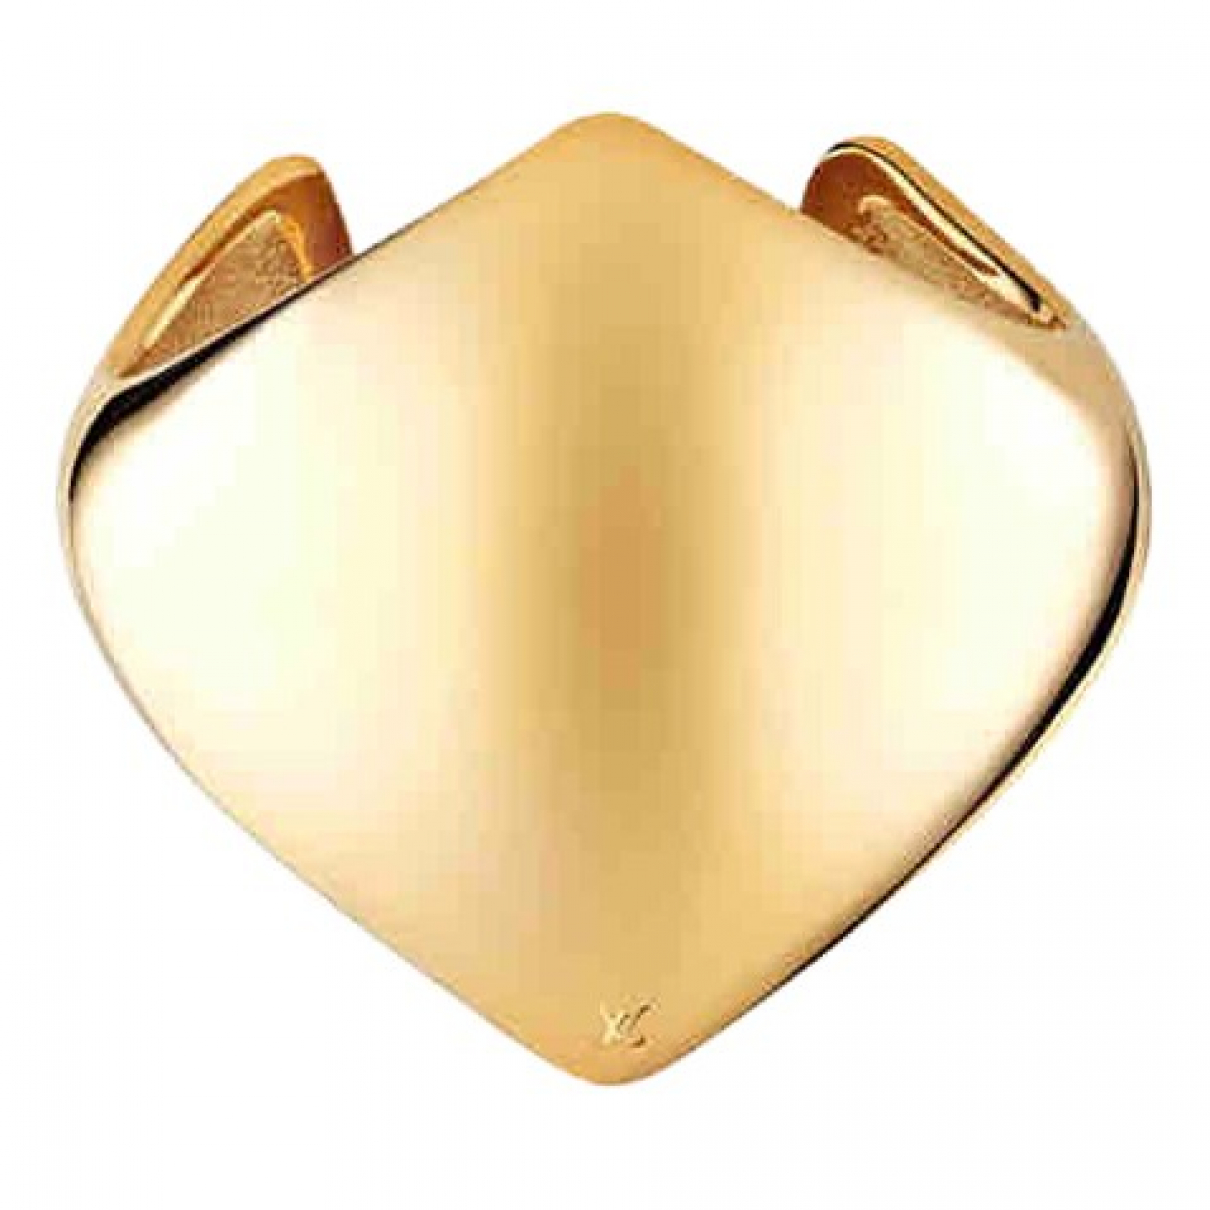 Louis Vuitton \N Gold Metal bracelet for Women \N